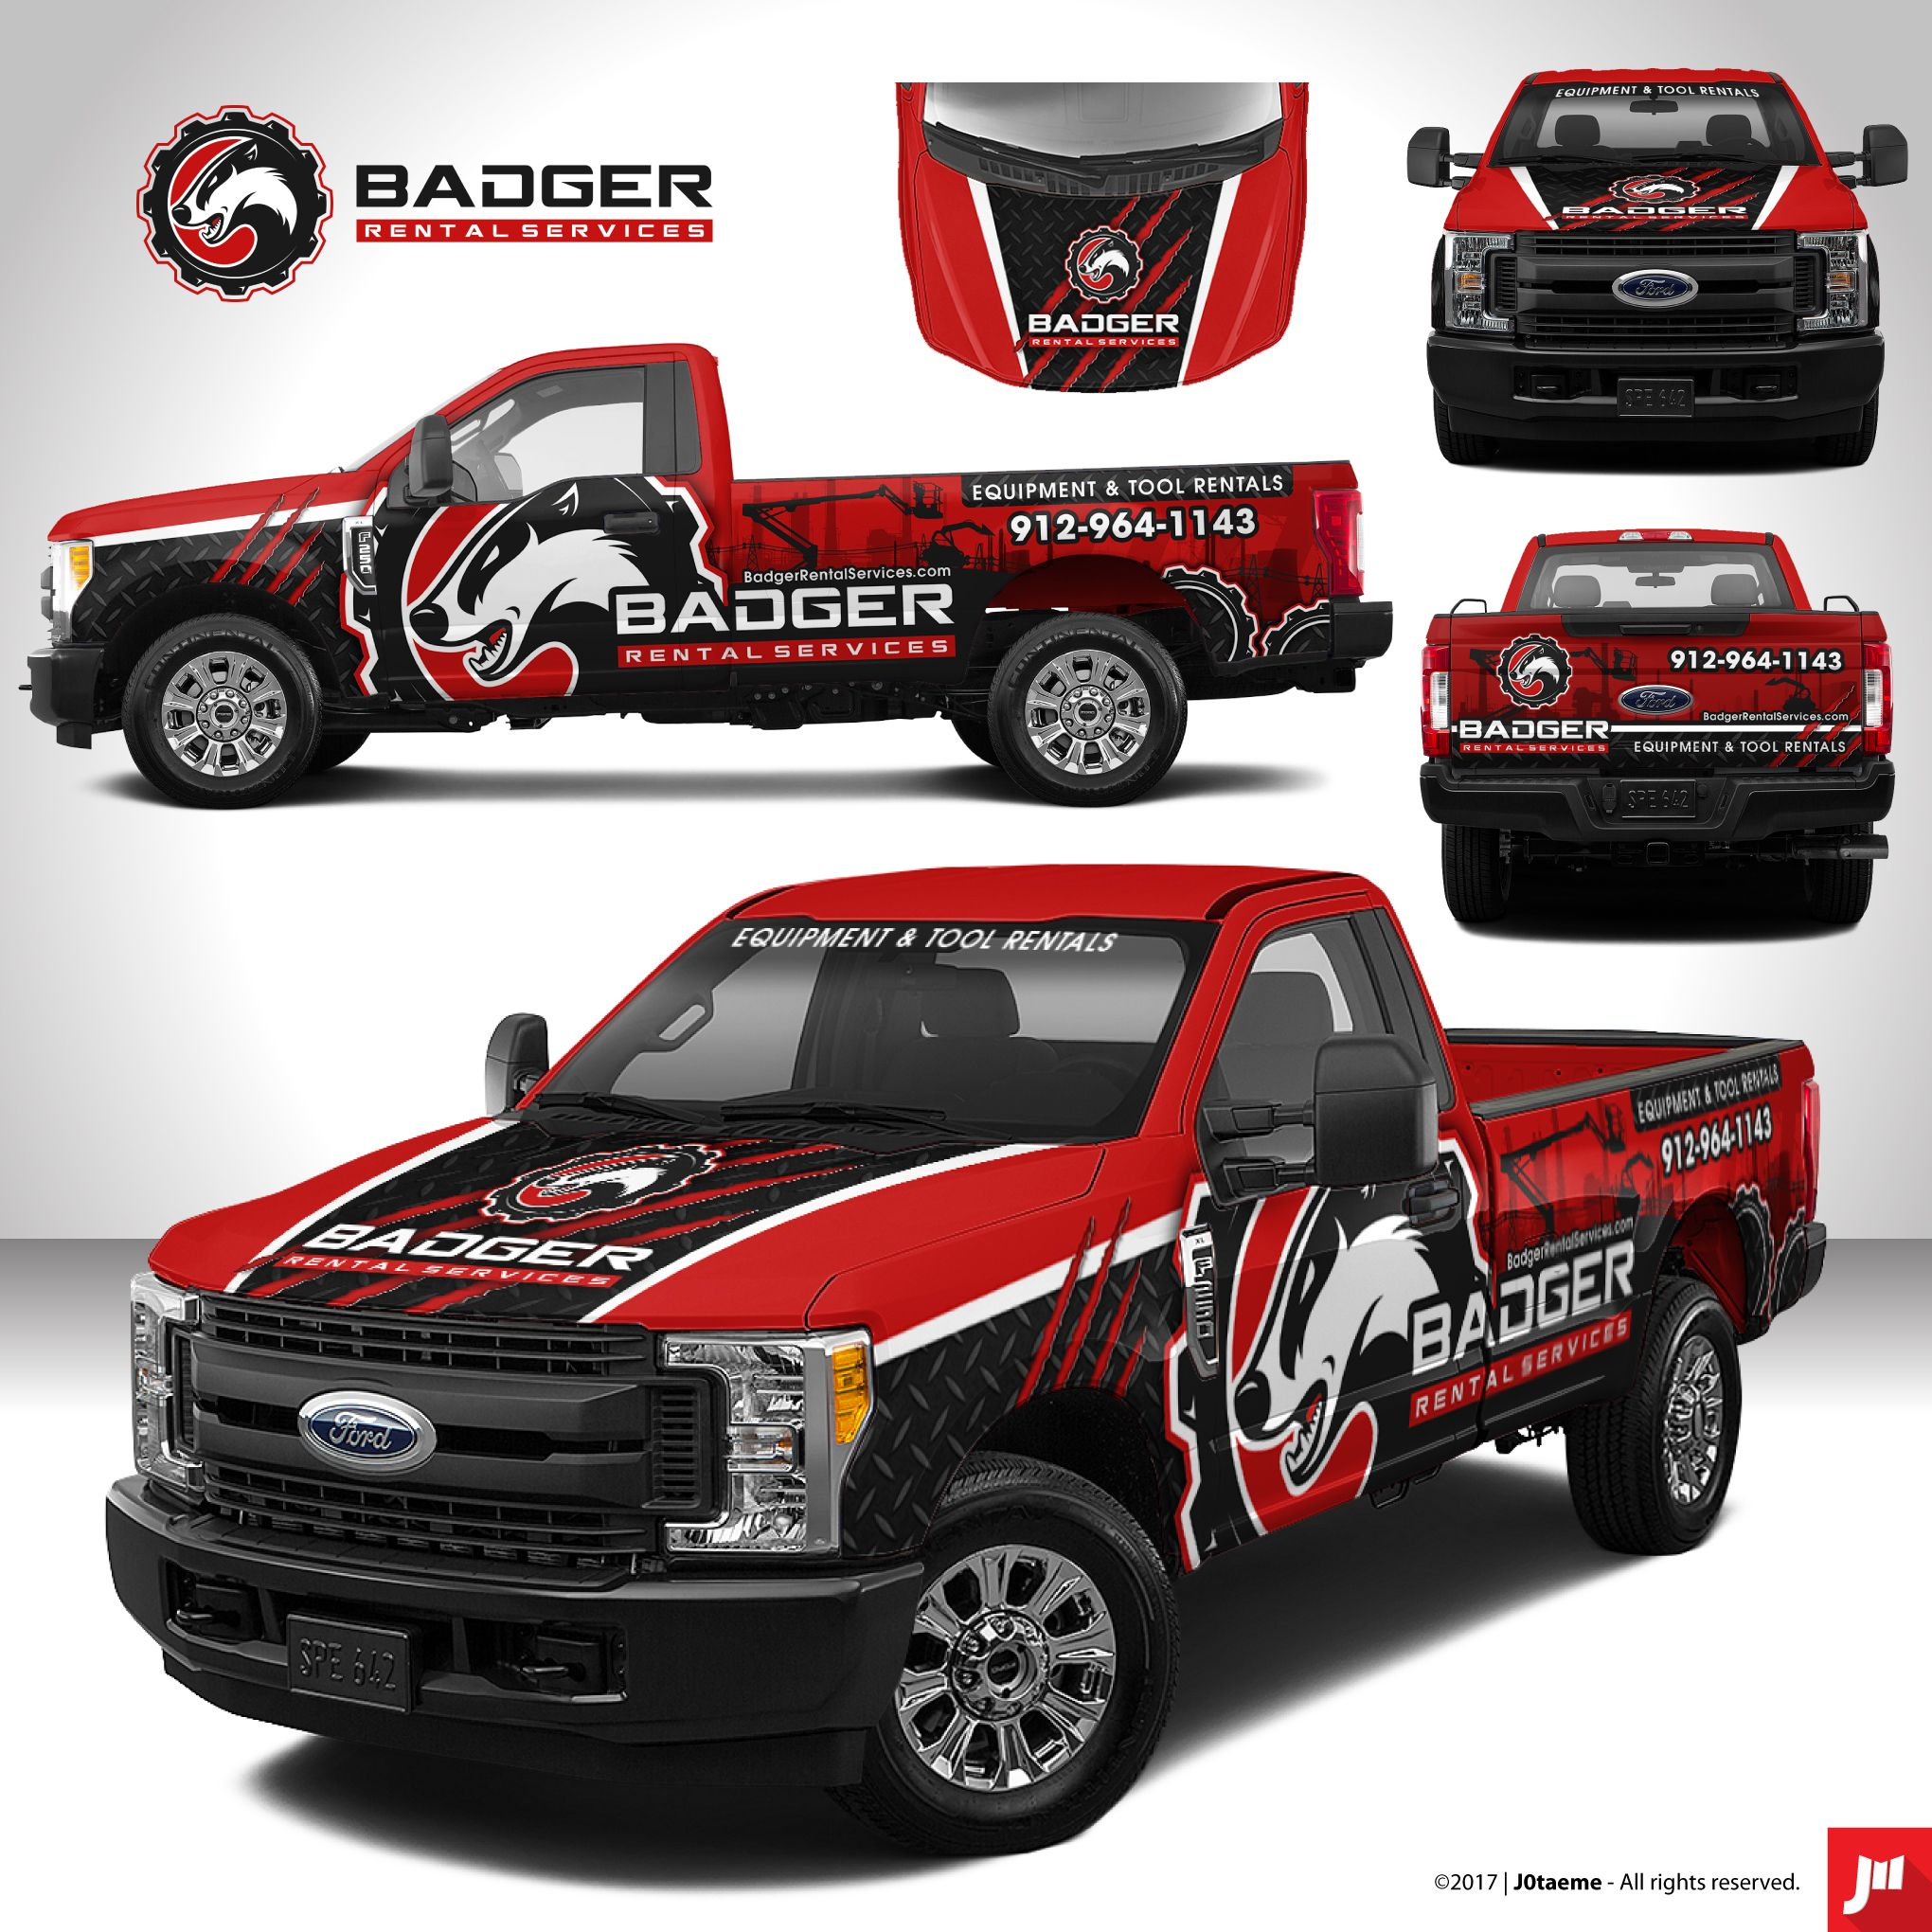 Badger Rental Services Ford F250 Truck Wrap By J0taeme Truck Design Van Wrap Trucks